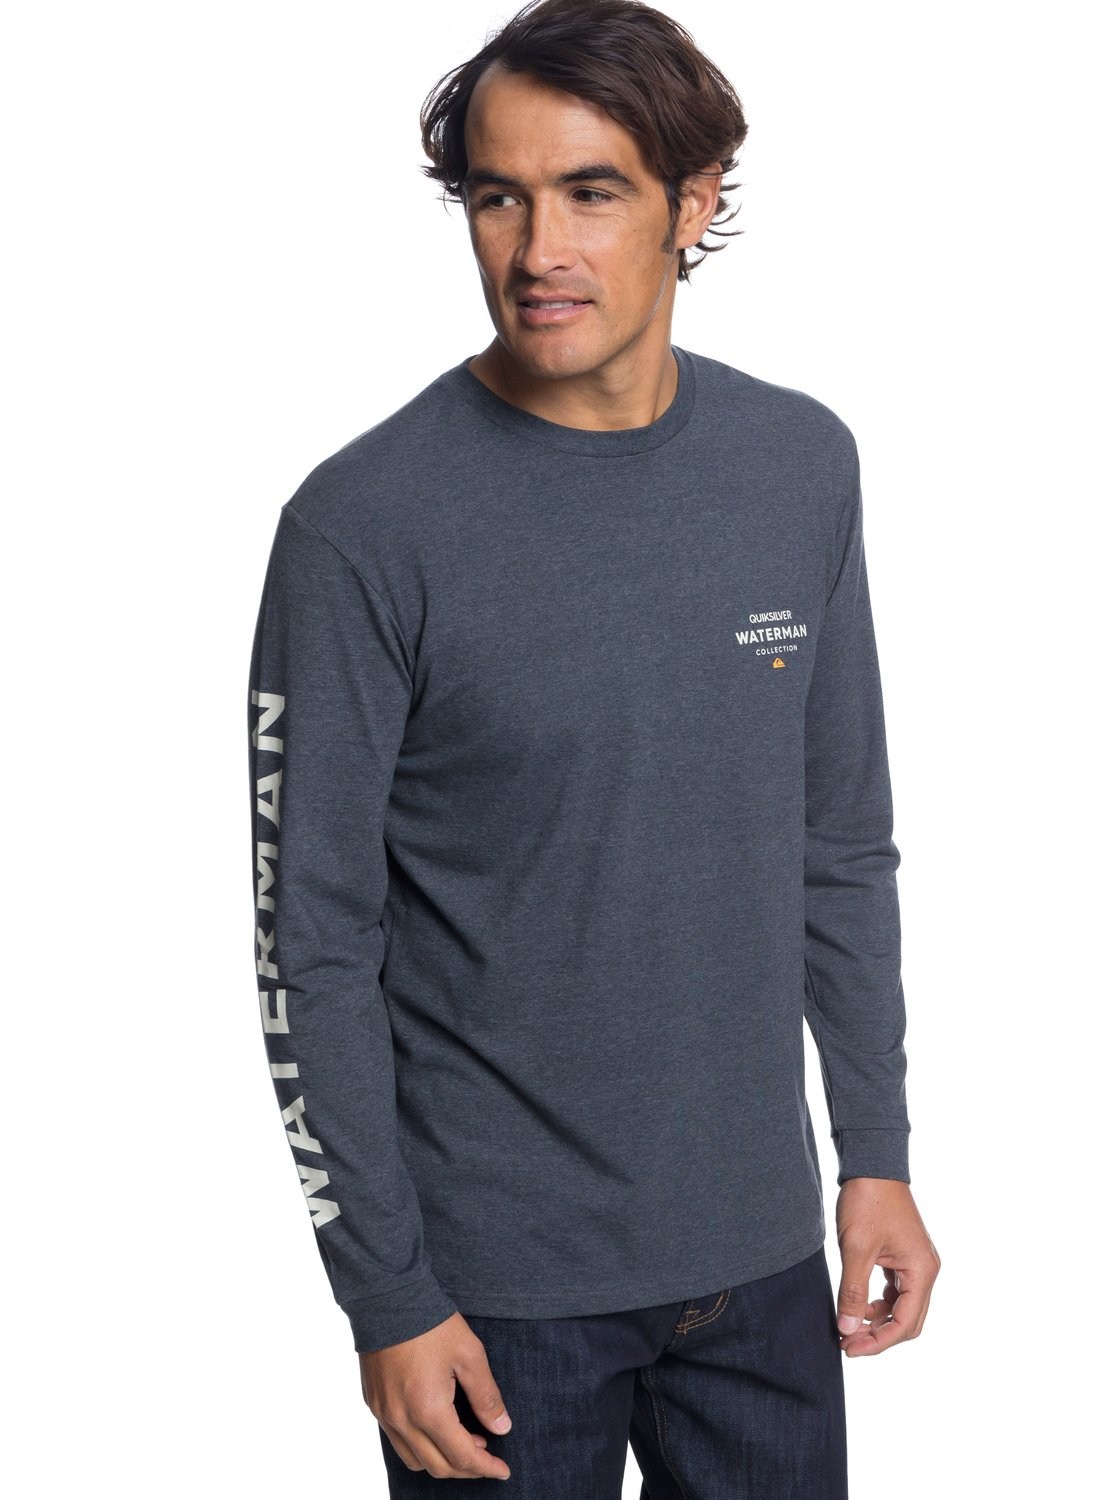 130a90ac1b6 0 Waterman Righty - Long Sleeve T-Shirt for Men Black EQMZT03101 Quiksilver